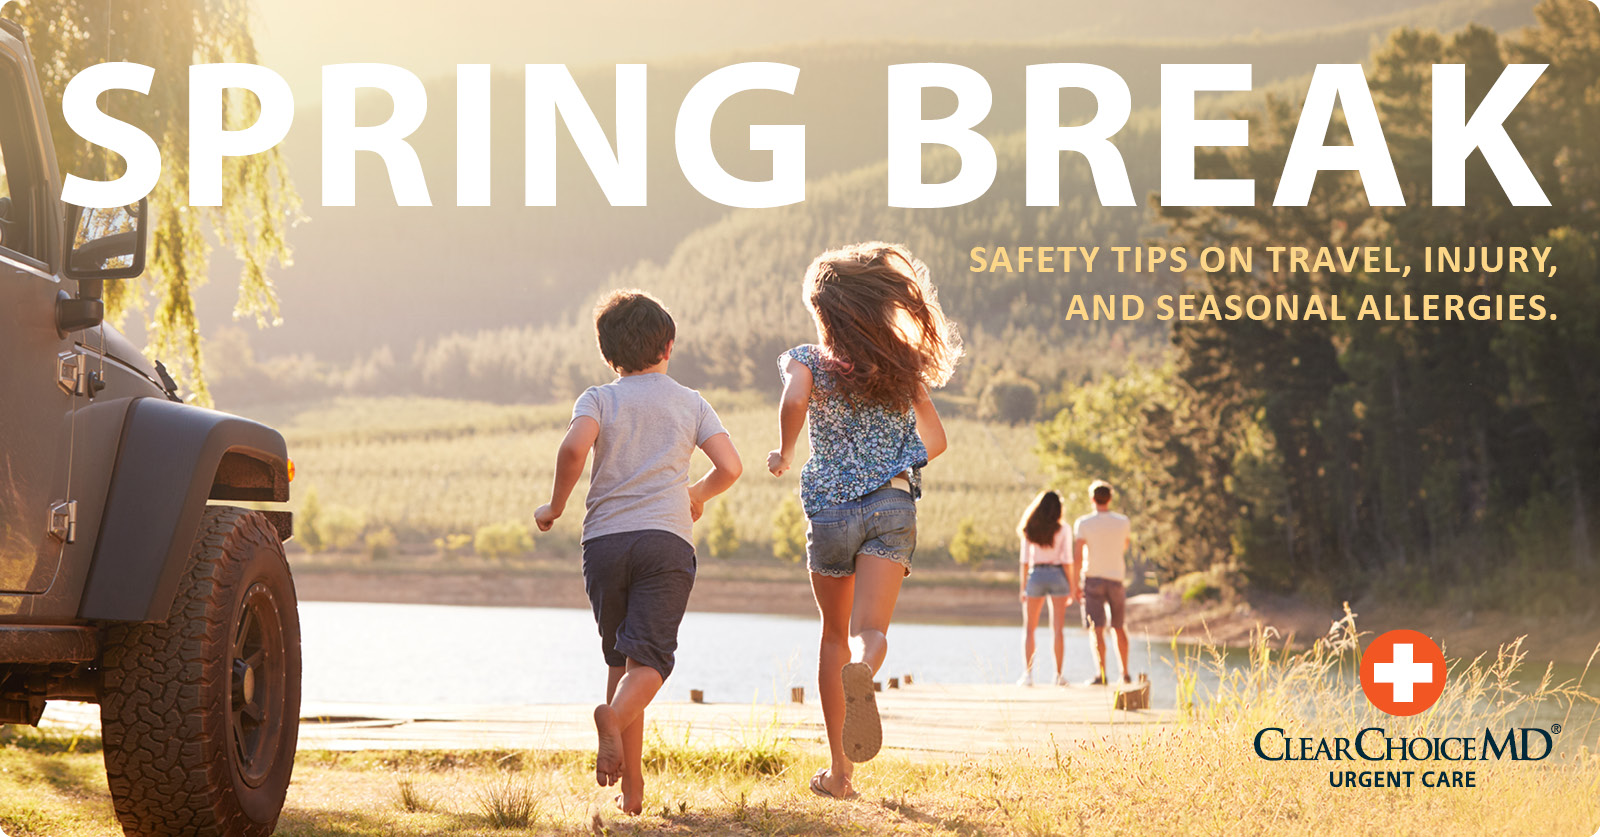 Spring Break Safety Tips_2021-04-08